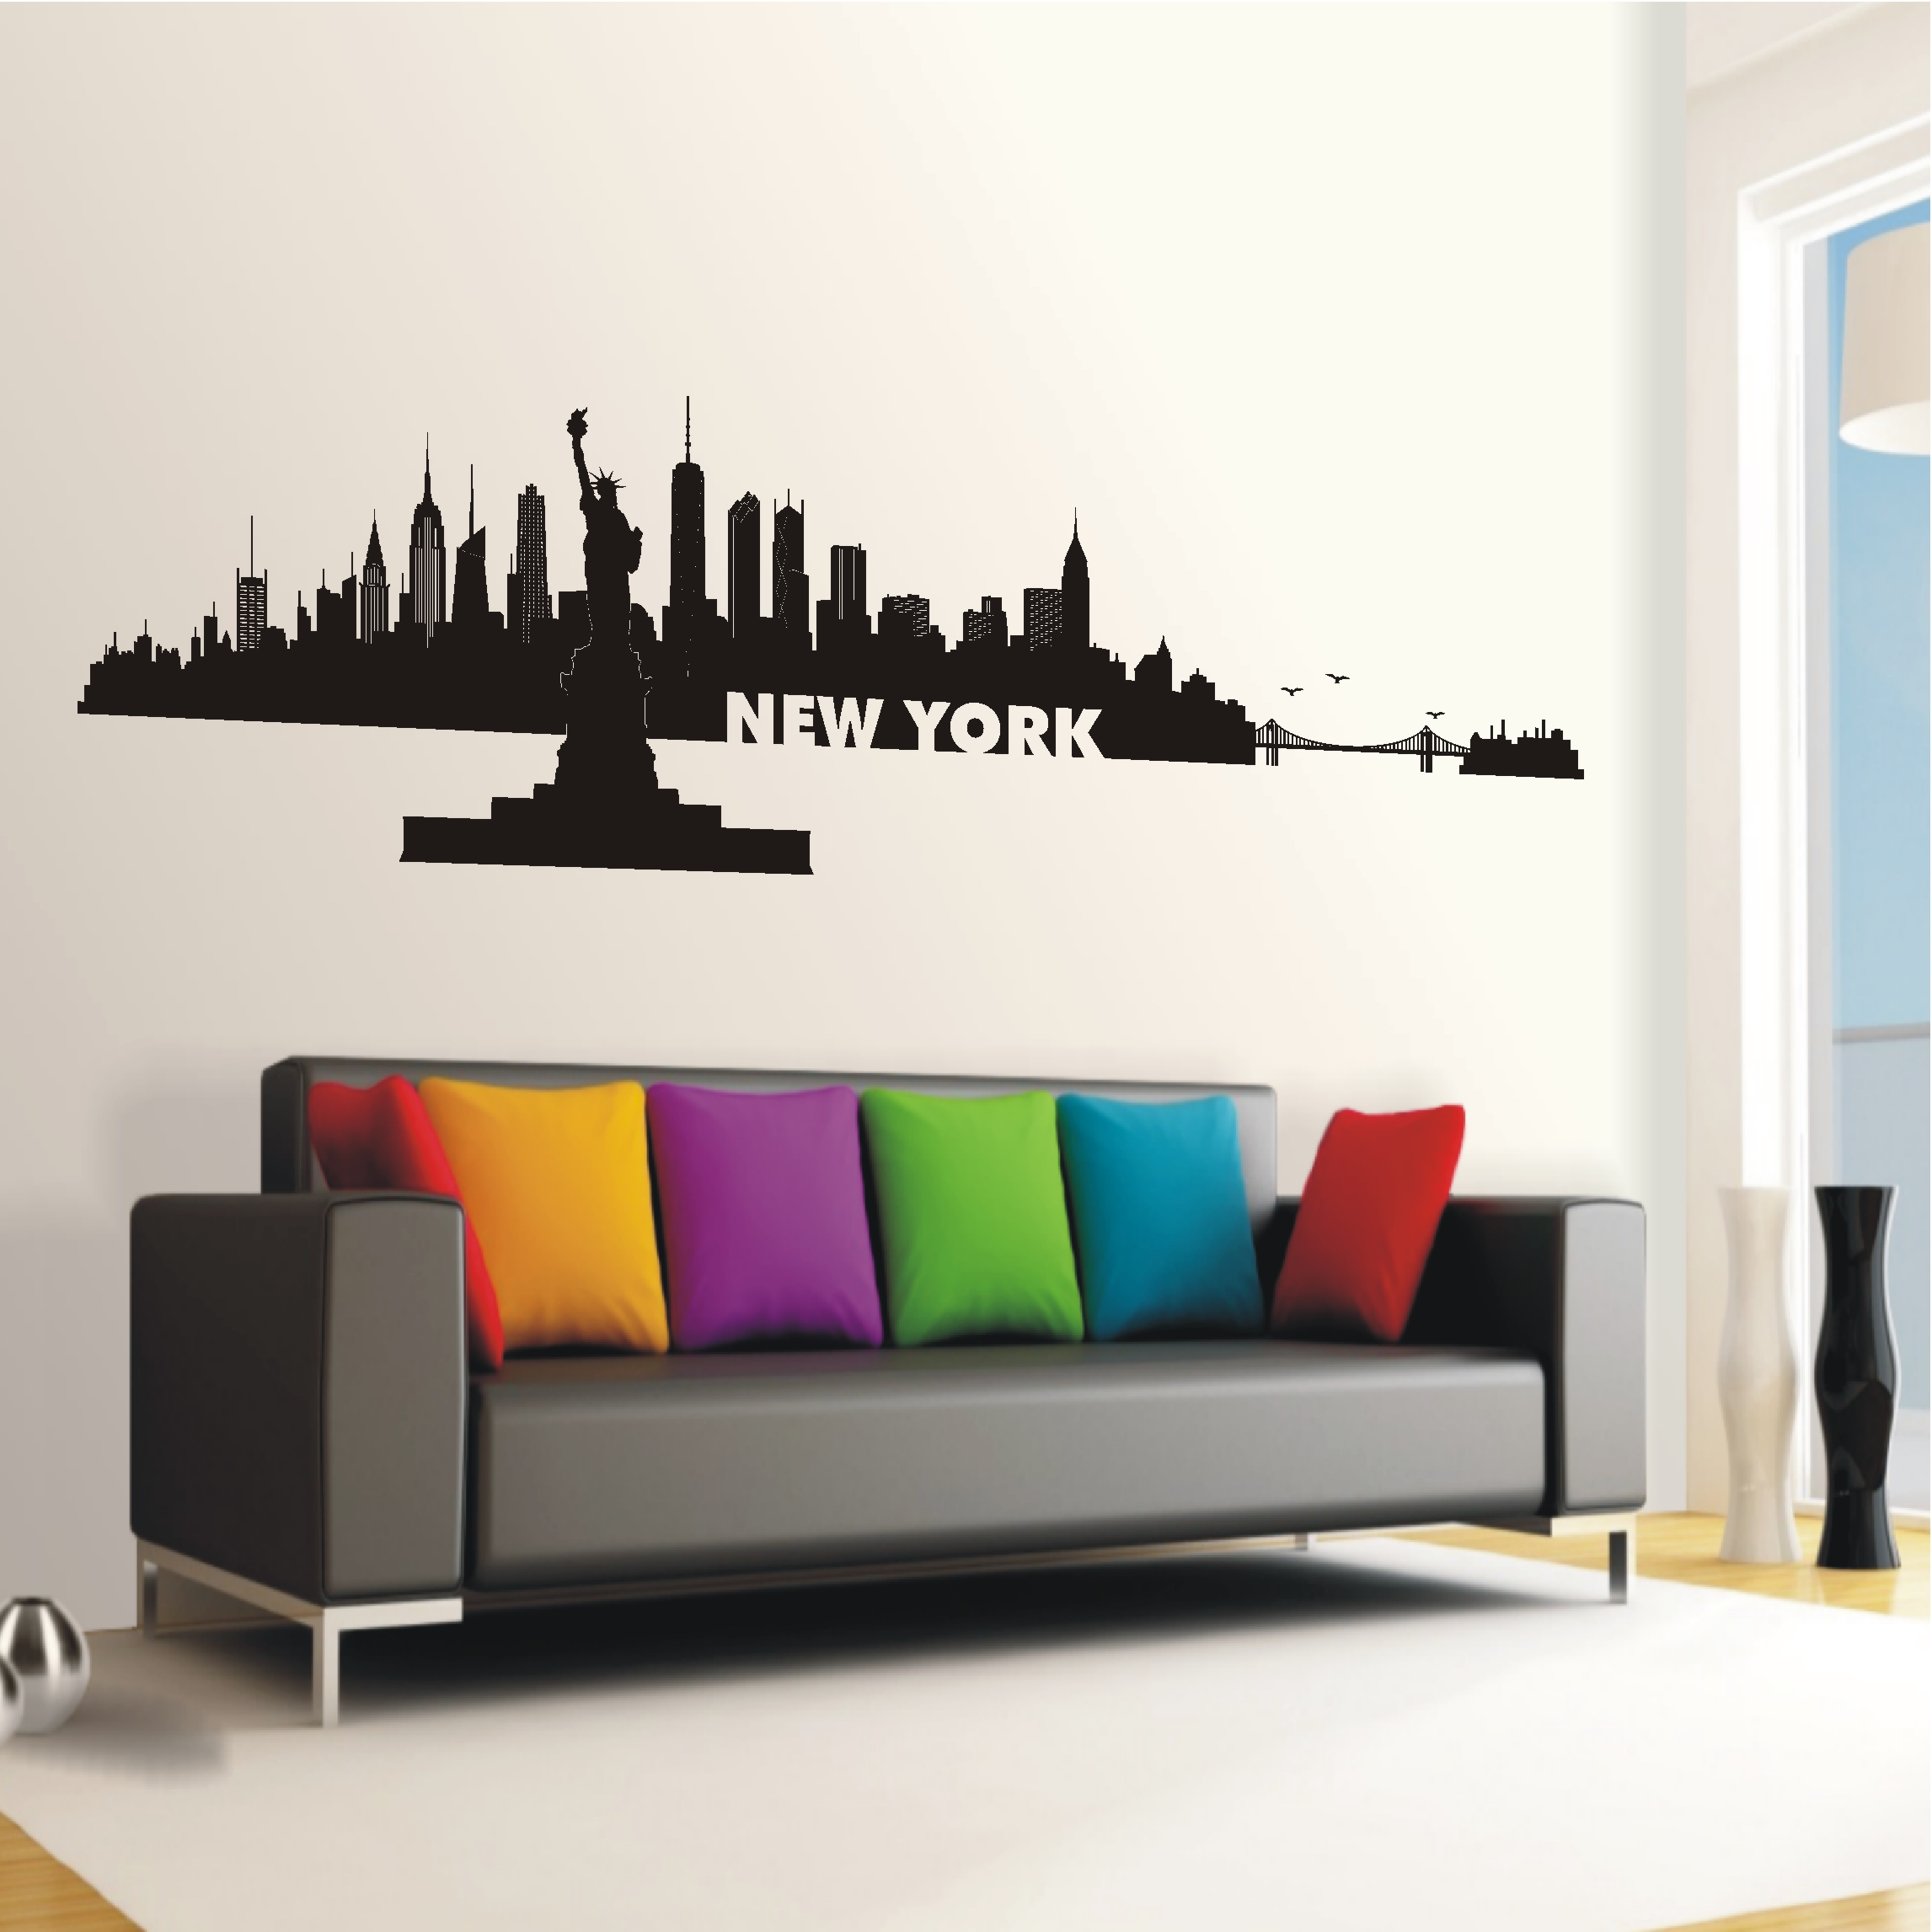 Deko Shop Wandtattoo Skyline New York Deko Shop